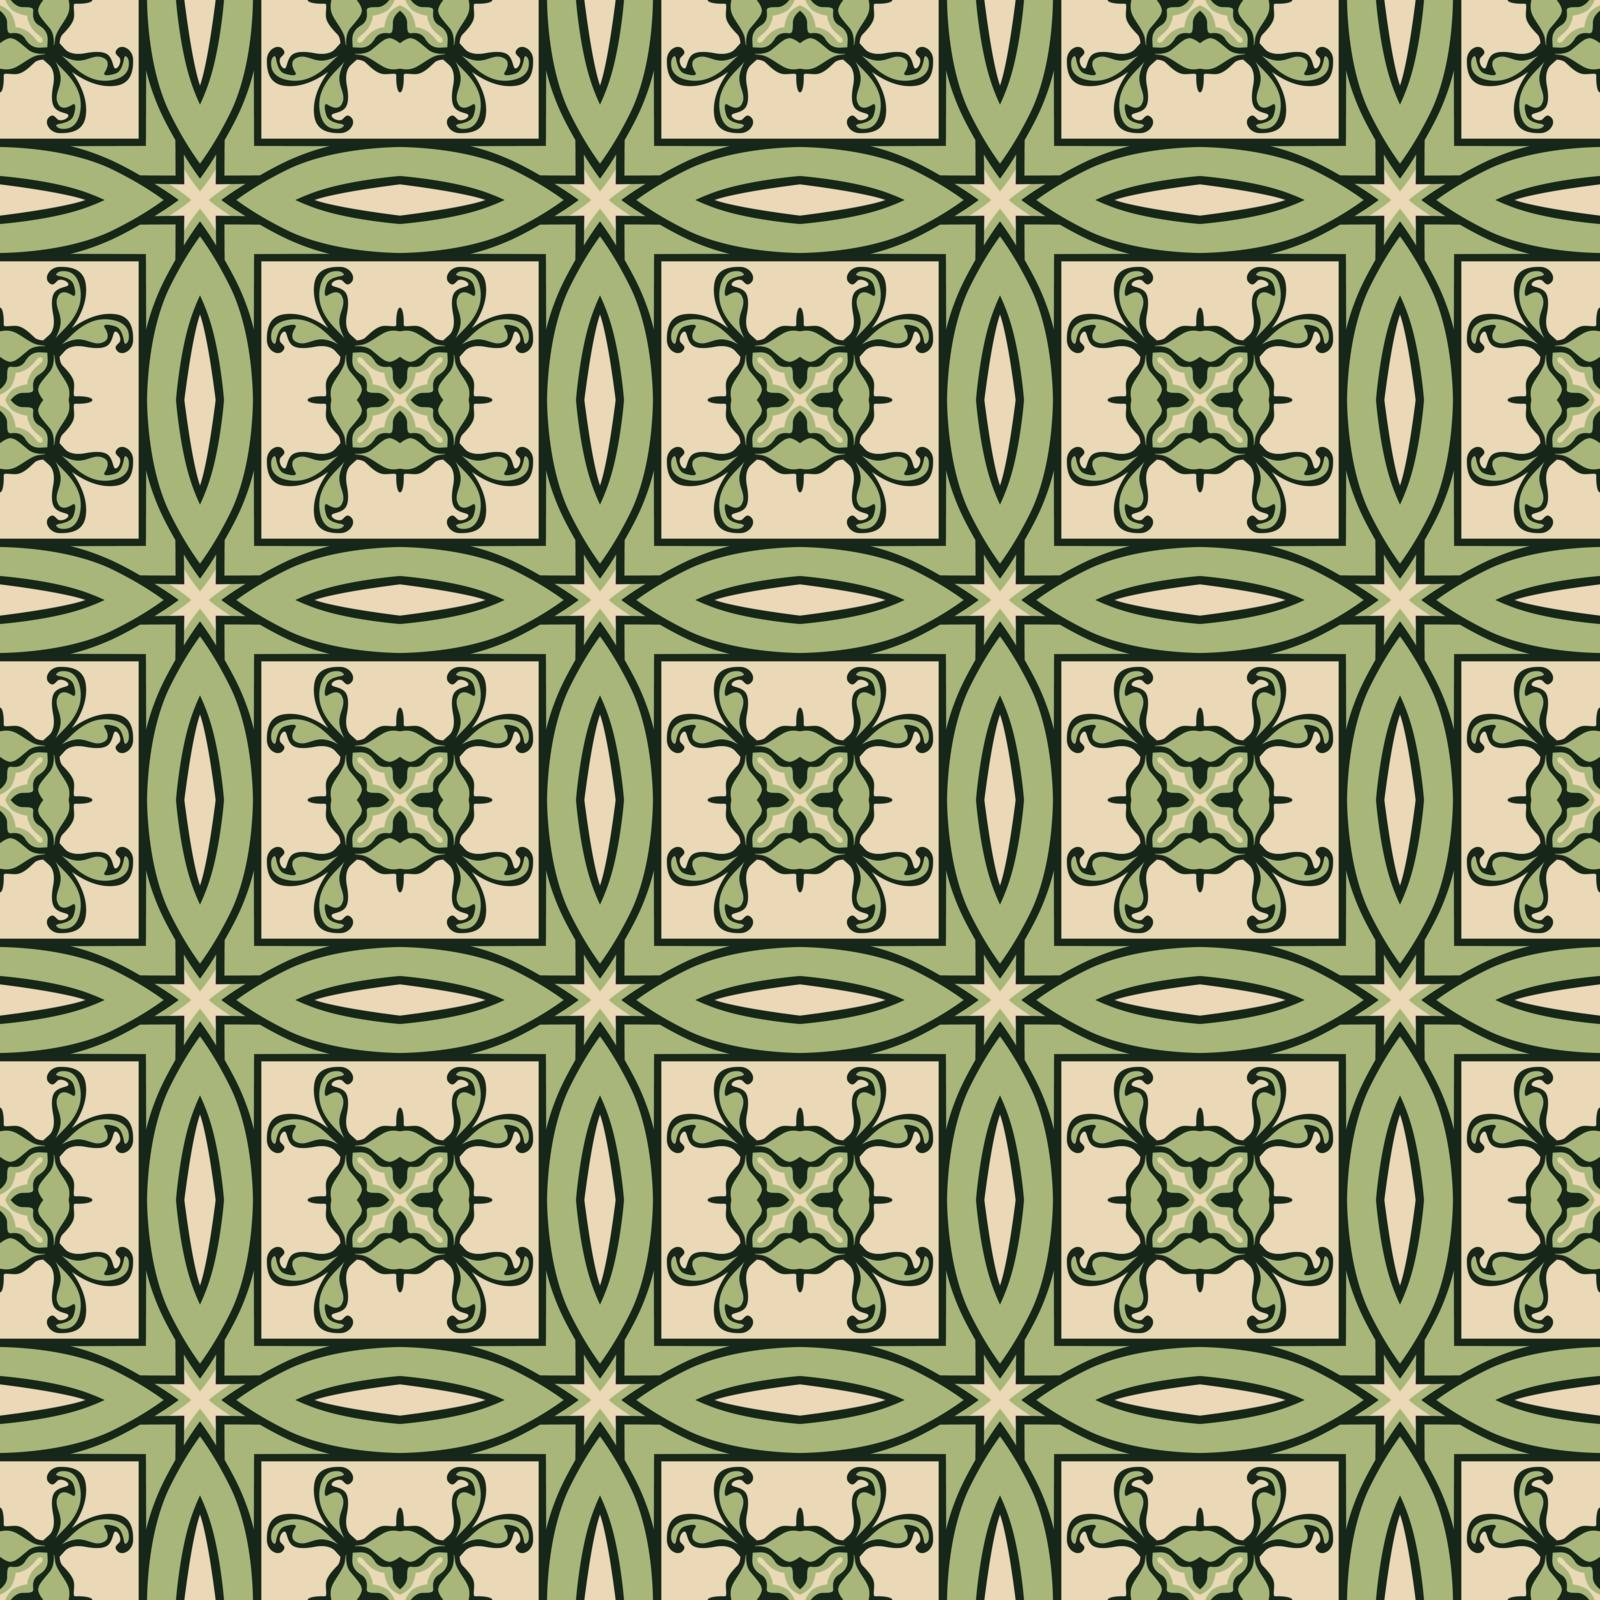 Seamless illustrated pattern made of abstract elements in beige, green and black